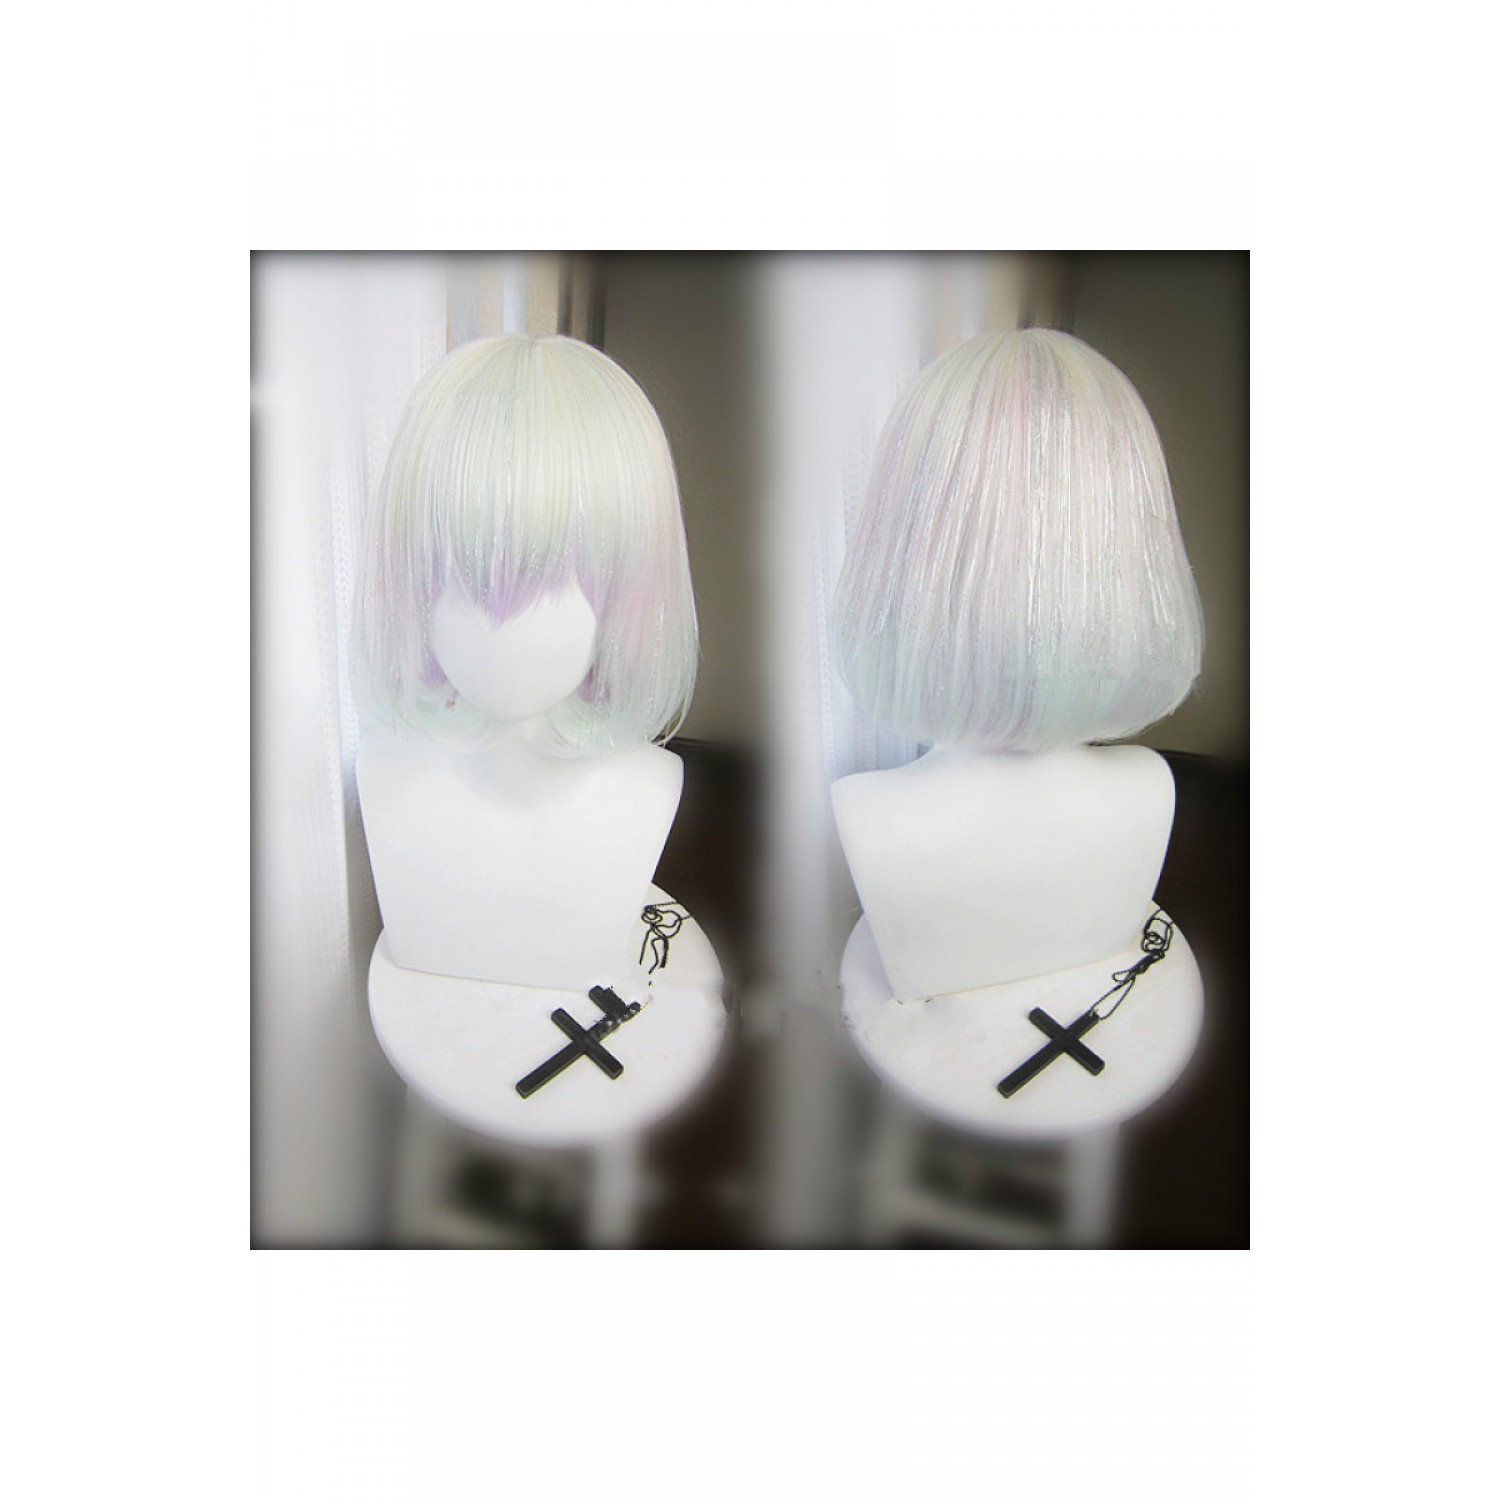 Land of the Lustrous Diamond Cosplay Wig with Laser